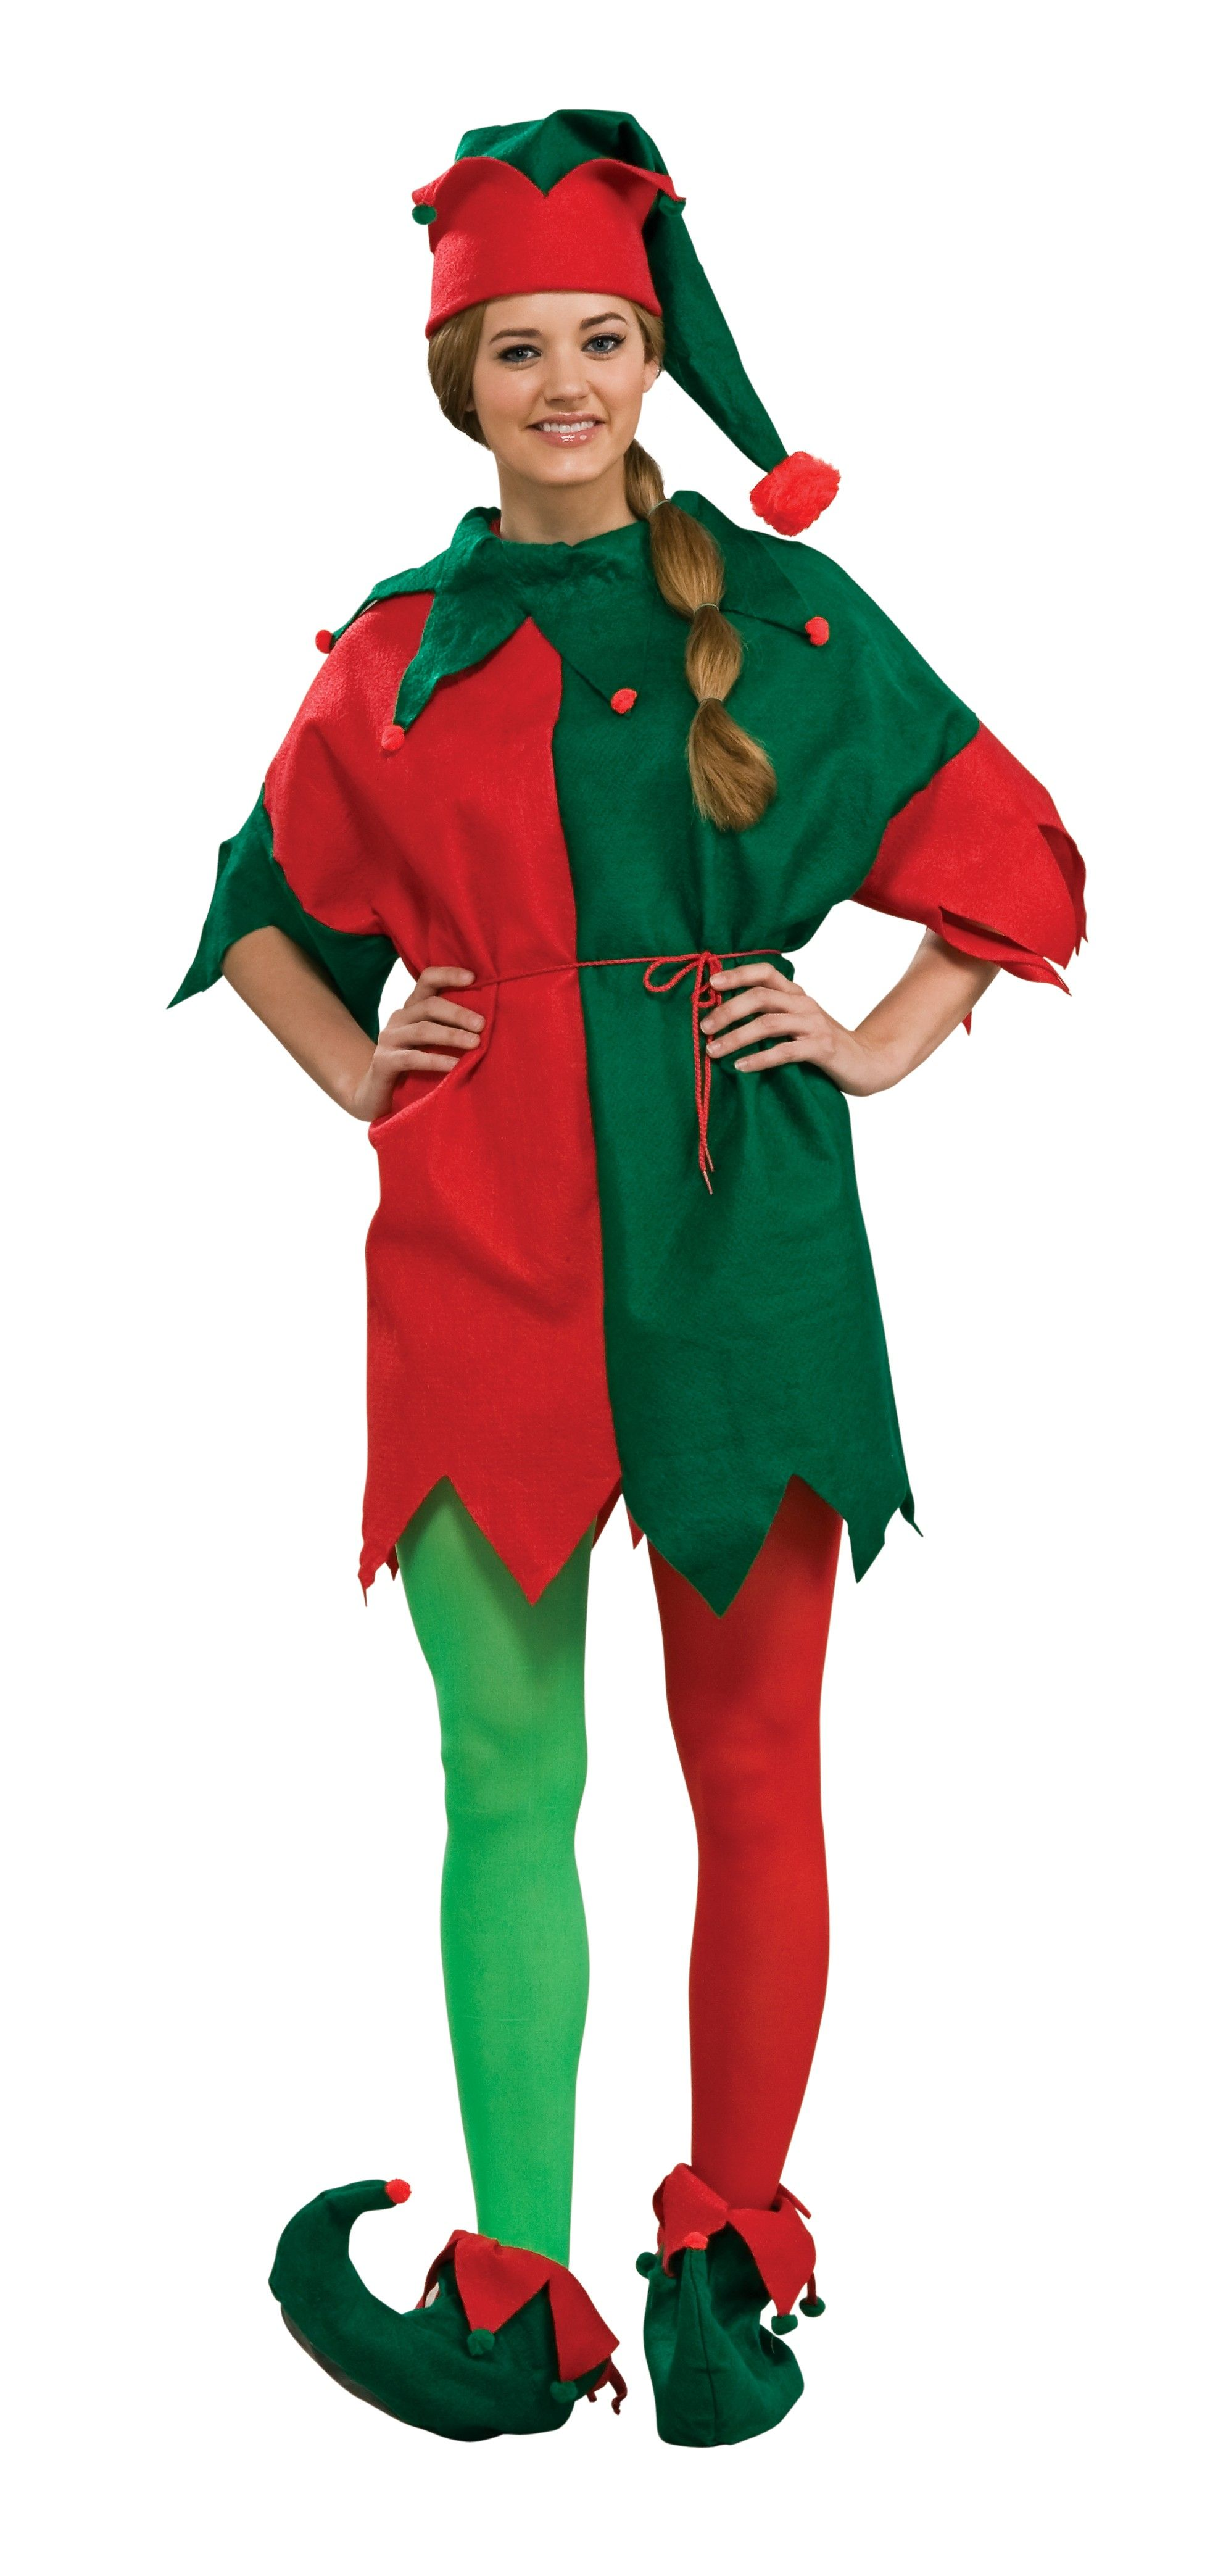 Elf Tunic Adult This elf tunic includes a red and green